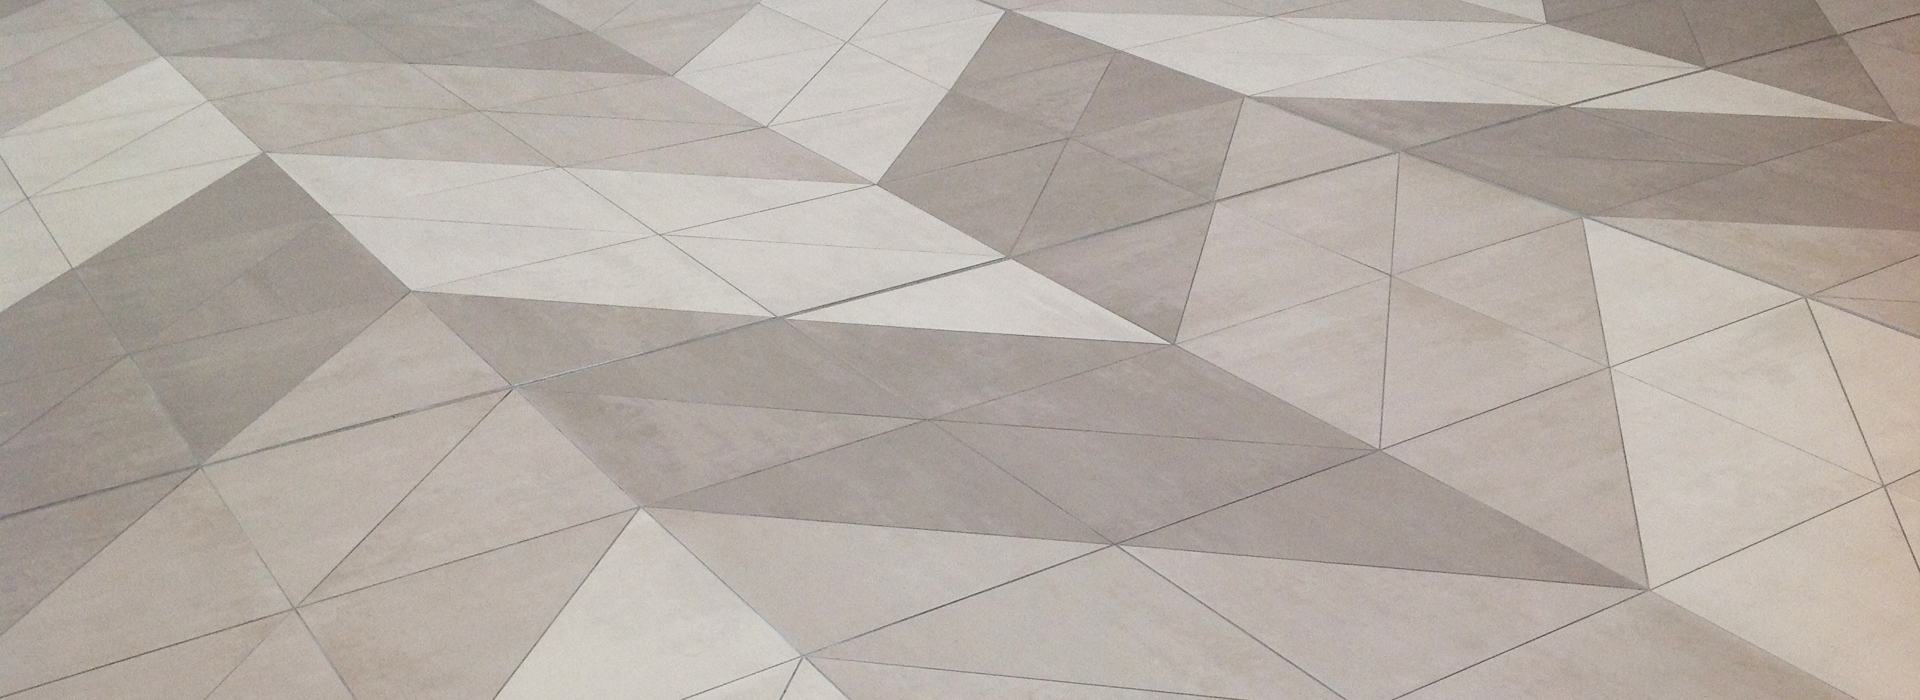 Mosa tiles ceramic tile solutions for architectural designs Tile ceramic flooring